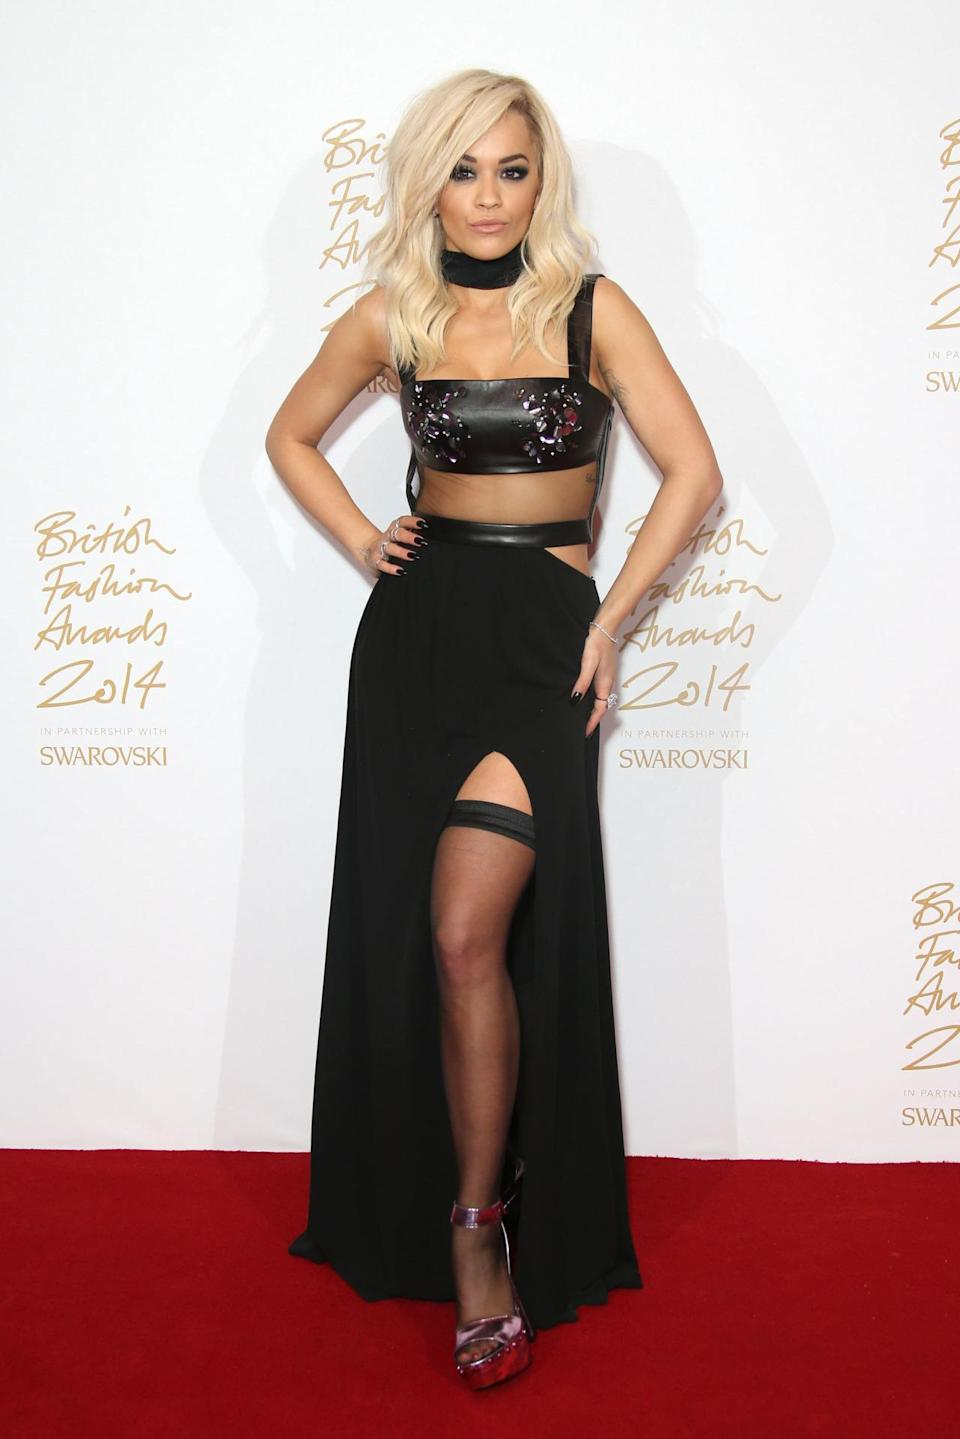 Rita Ora was on hand to present Prism with the Emerging Accessory Designer award — and did so in serious style. Wearing a Tom Ford gown from his most recent runway collection, the look was high class dominatrix with black illusion panels, a black leather bra with silver spikes, and a thigh-high slit to show off thigh-high stockings.